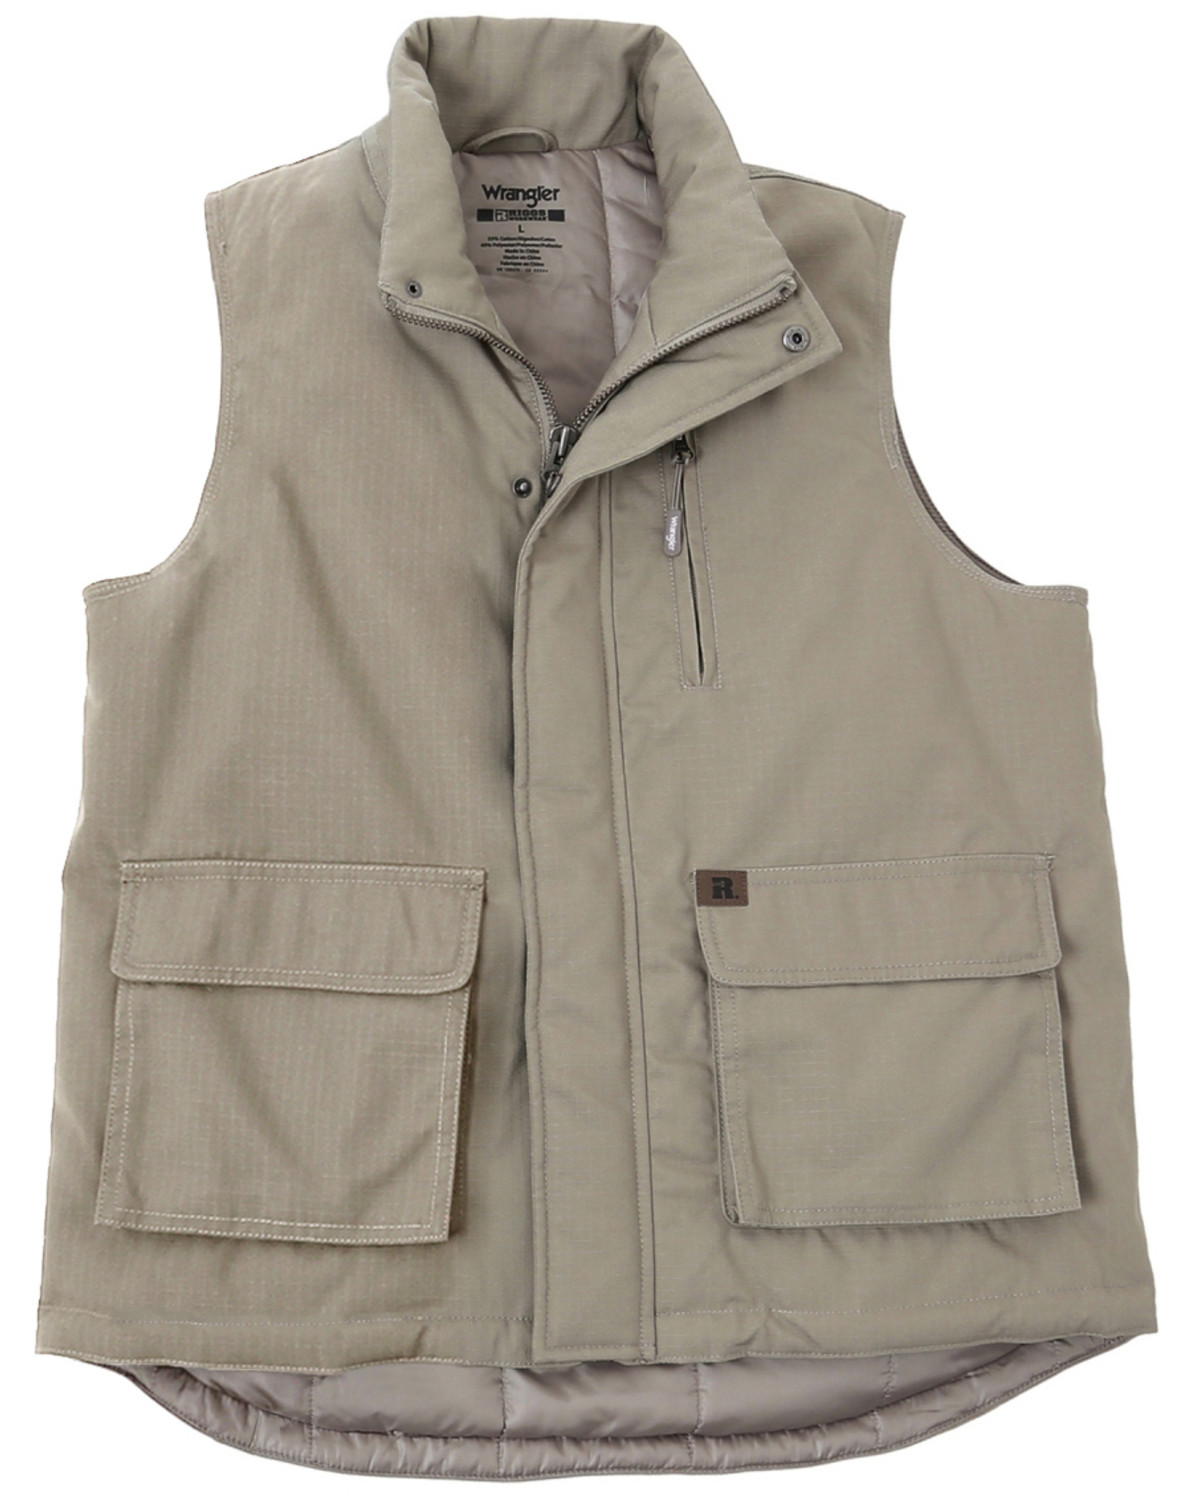 Mens tall work vest jalur b29 investments